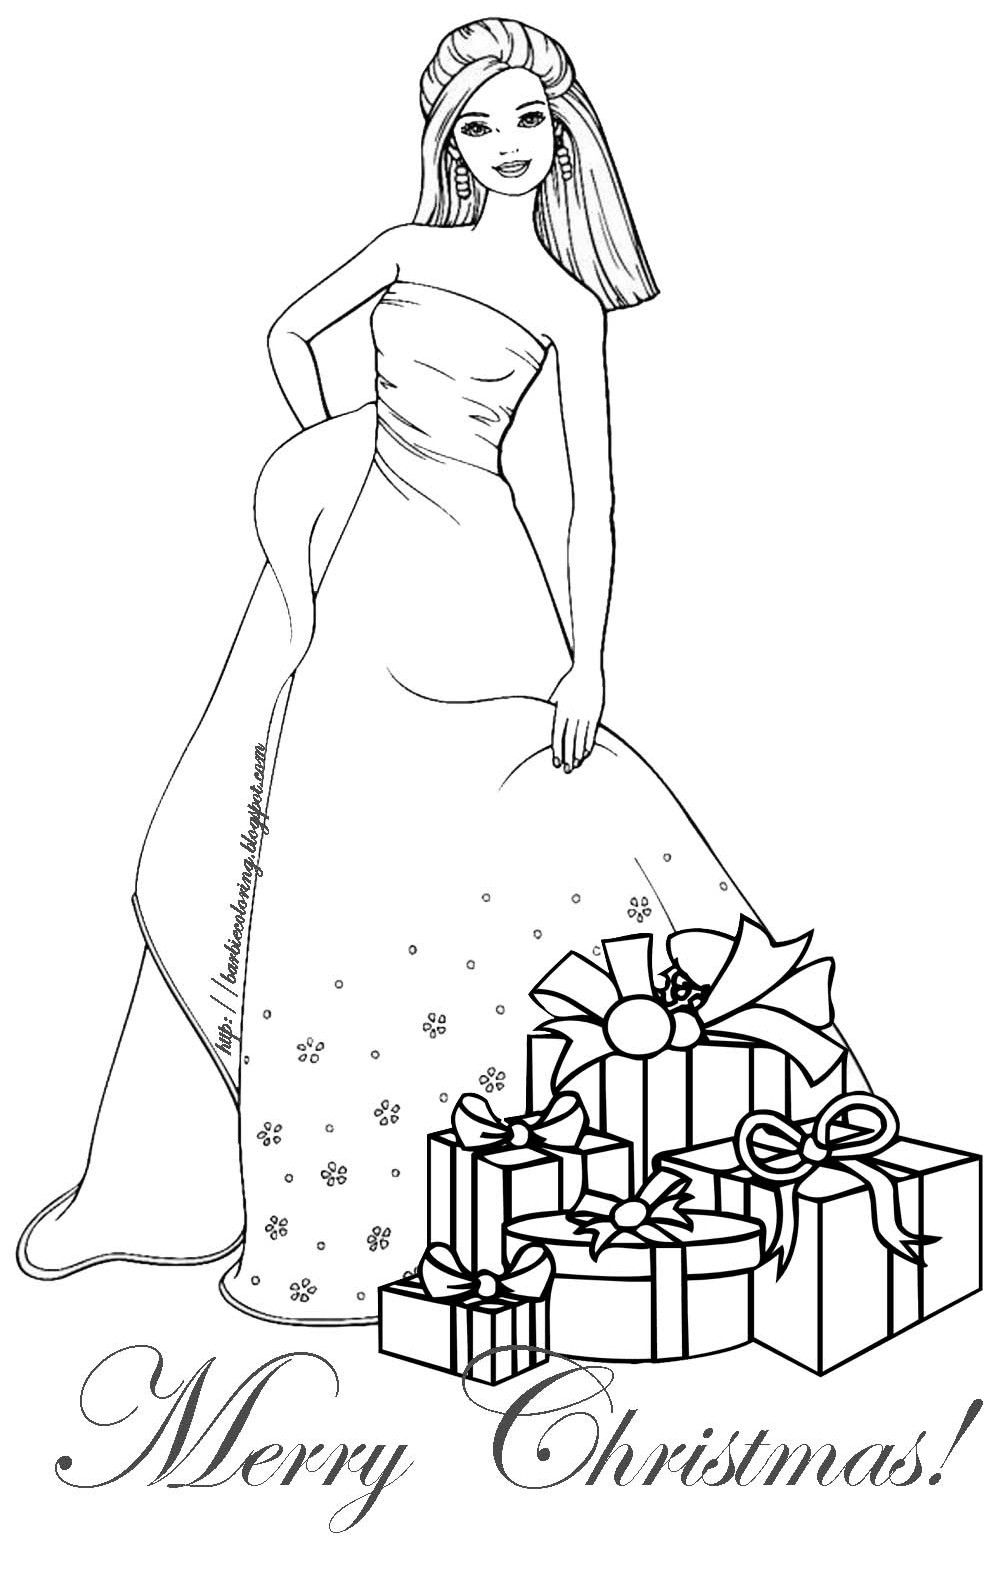 Barbie Coloring Pages Barbie Christmas Coloring Page Barbie Coloring Santa Coloring Pages Disney Princess Coloring Pages